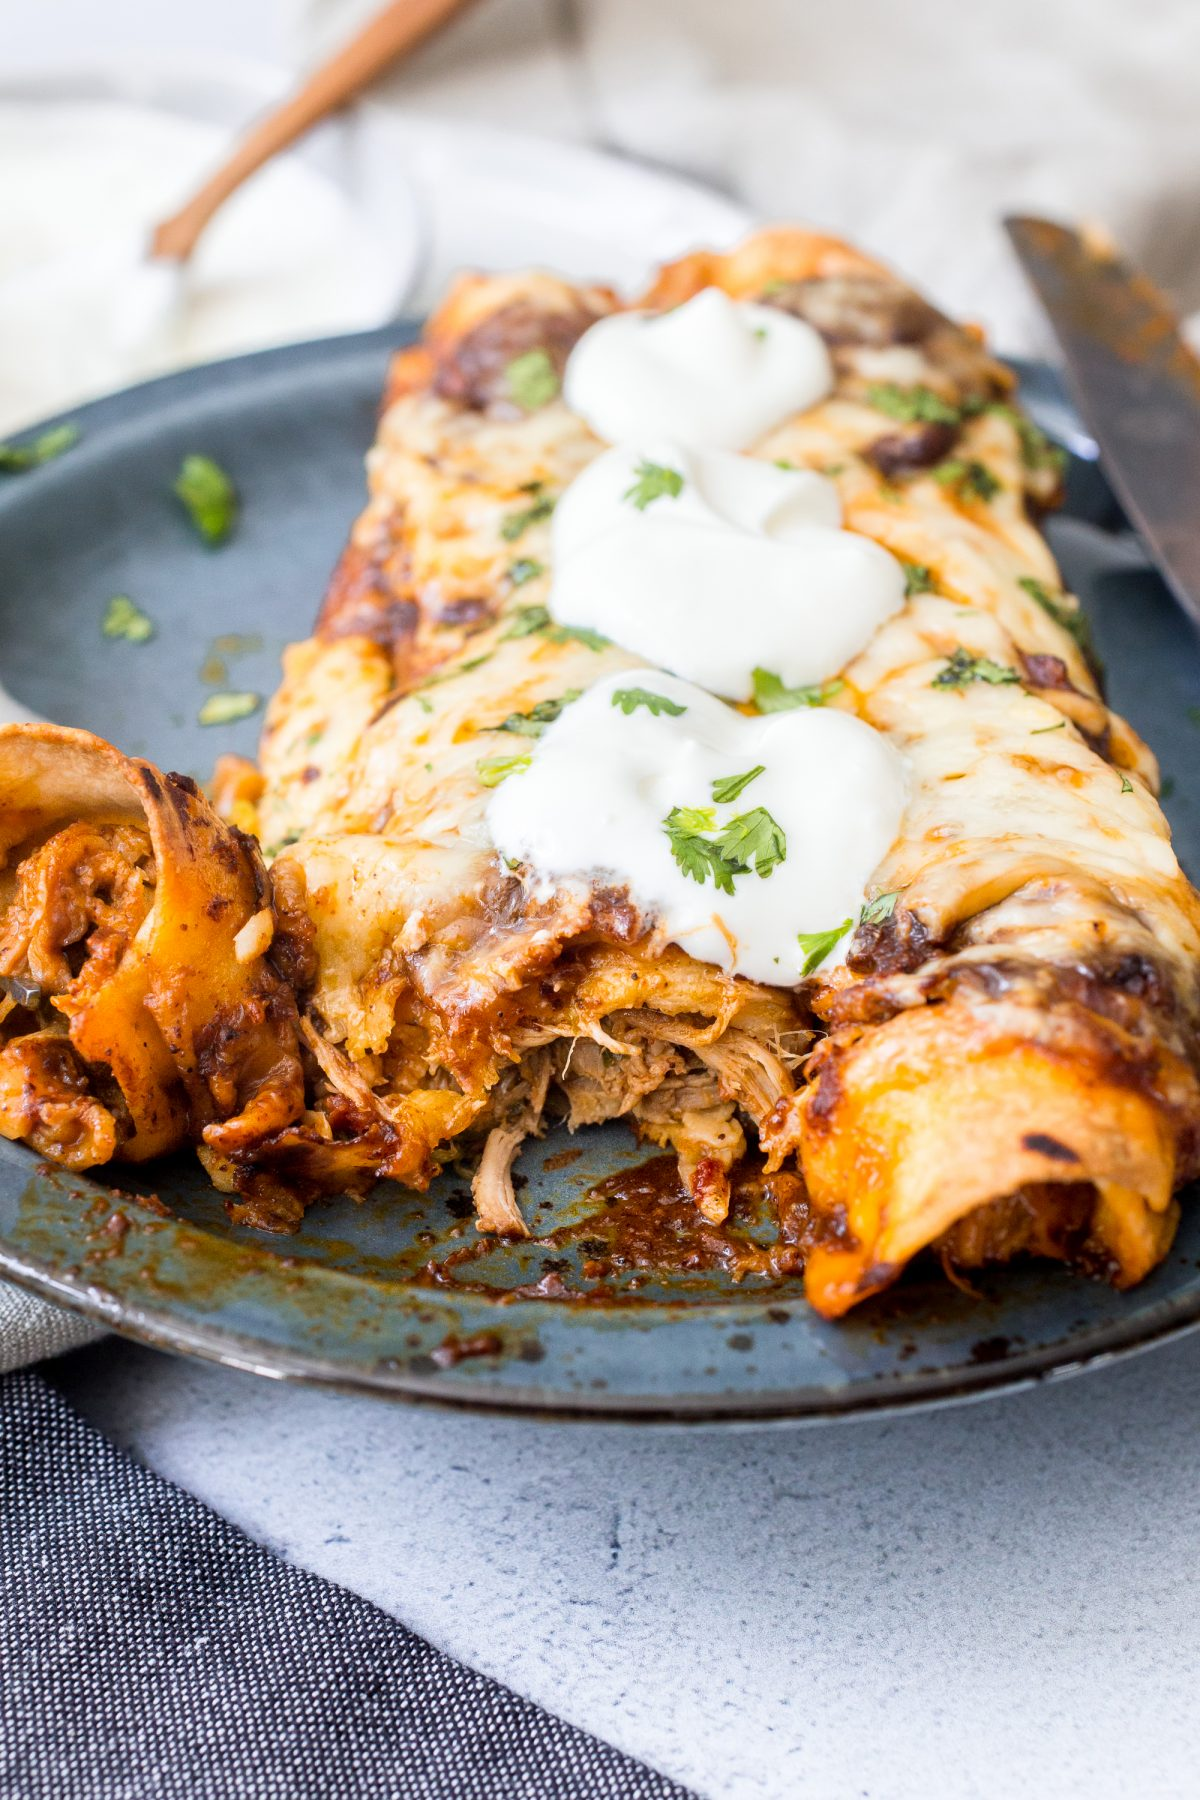 Close-up shot of 2 enchiladas filled with shredded chicken and garnished with sour cream